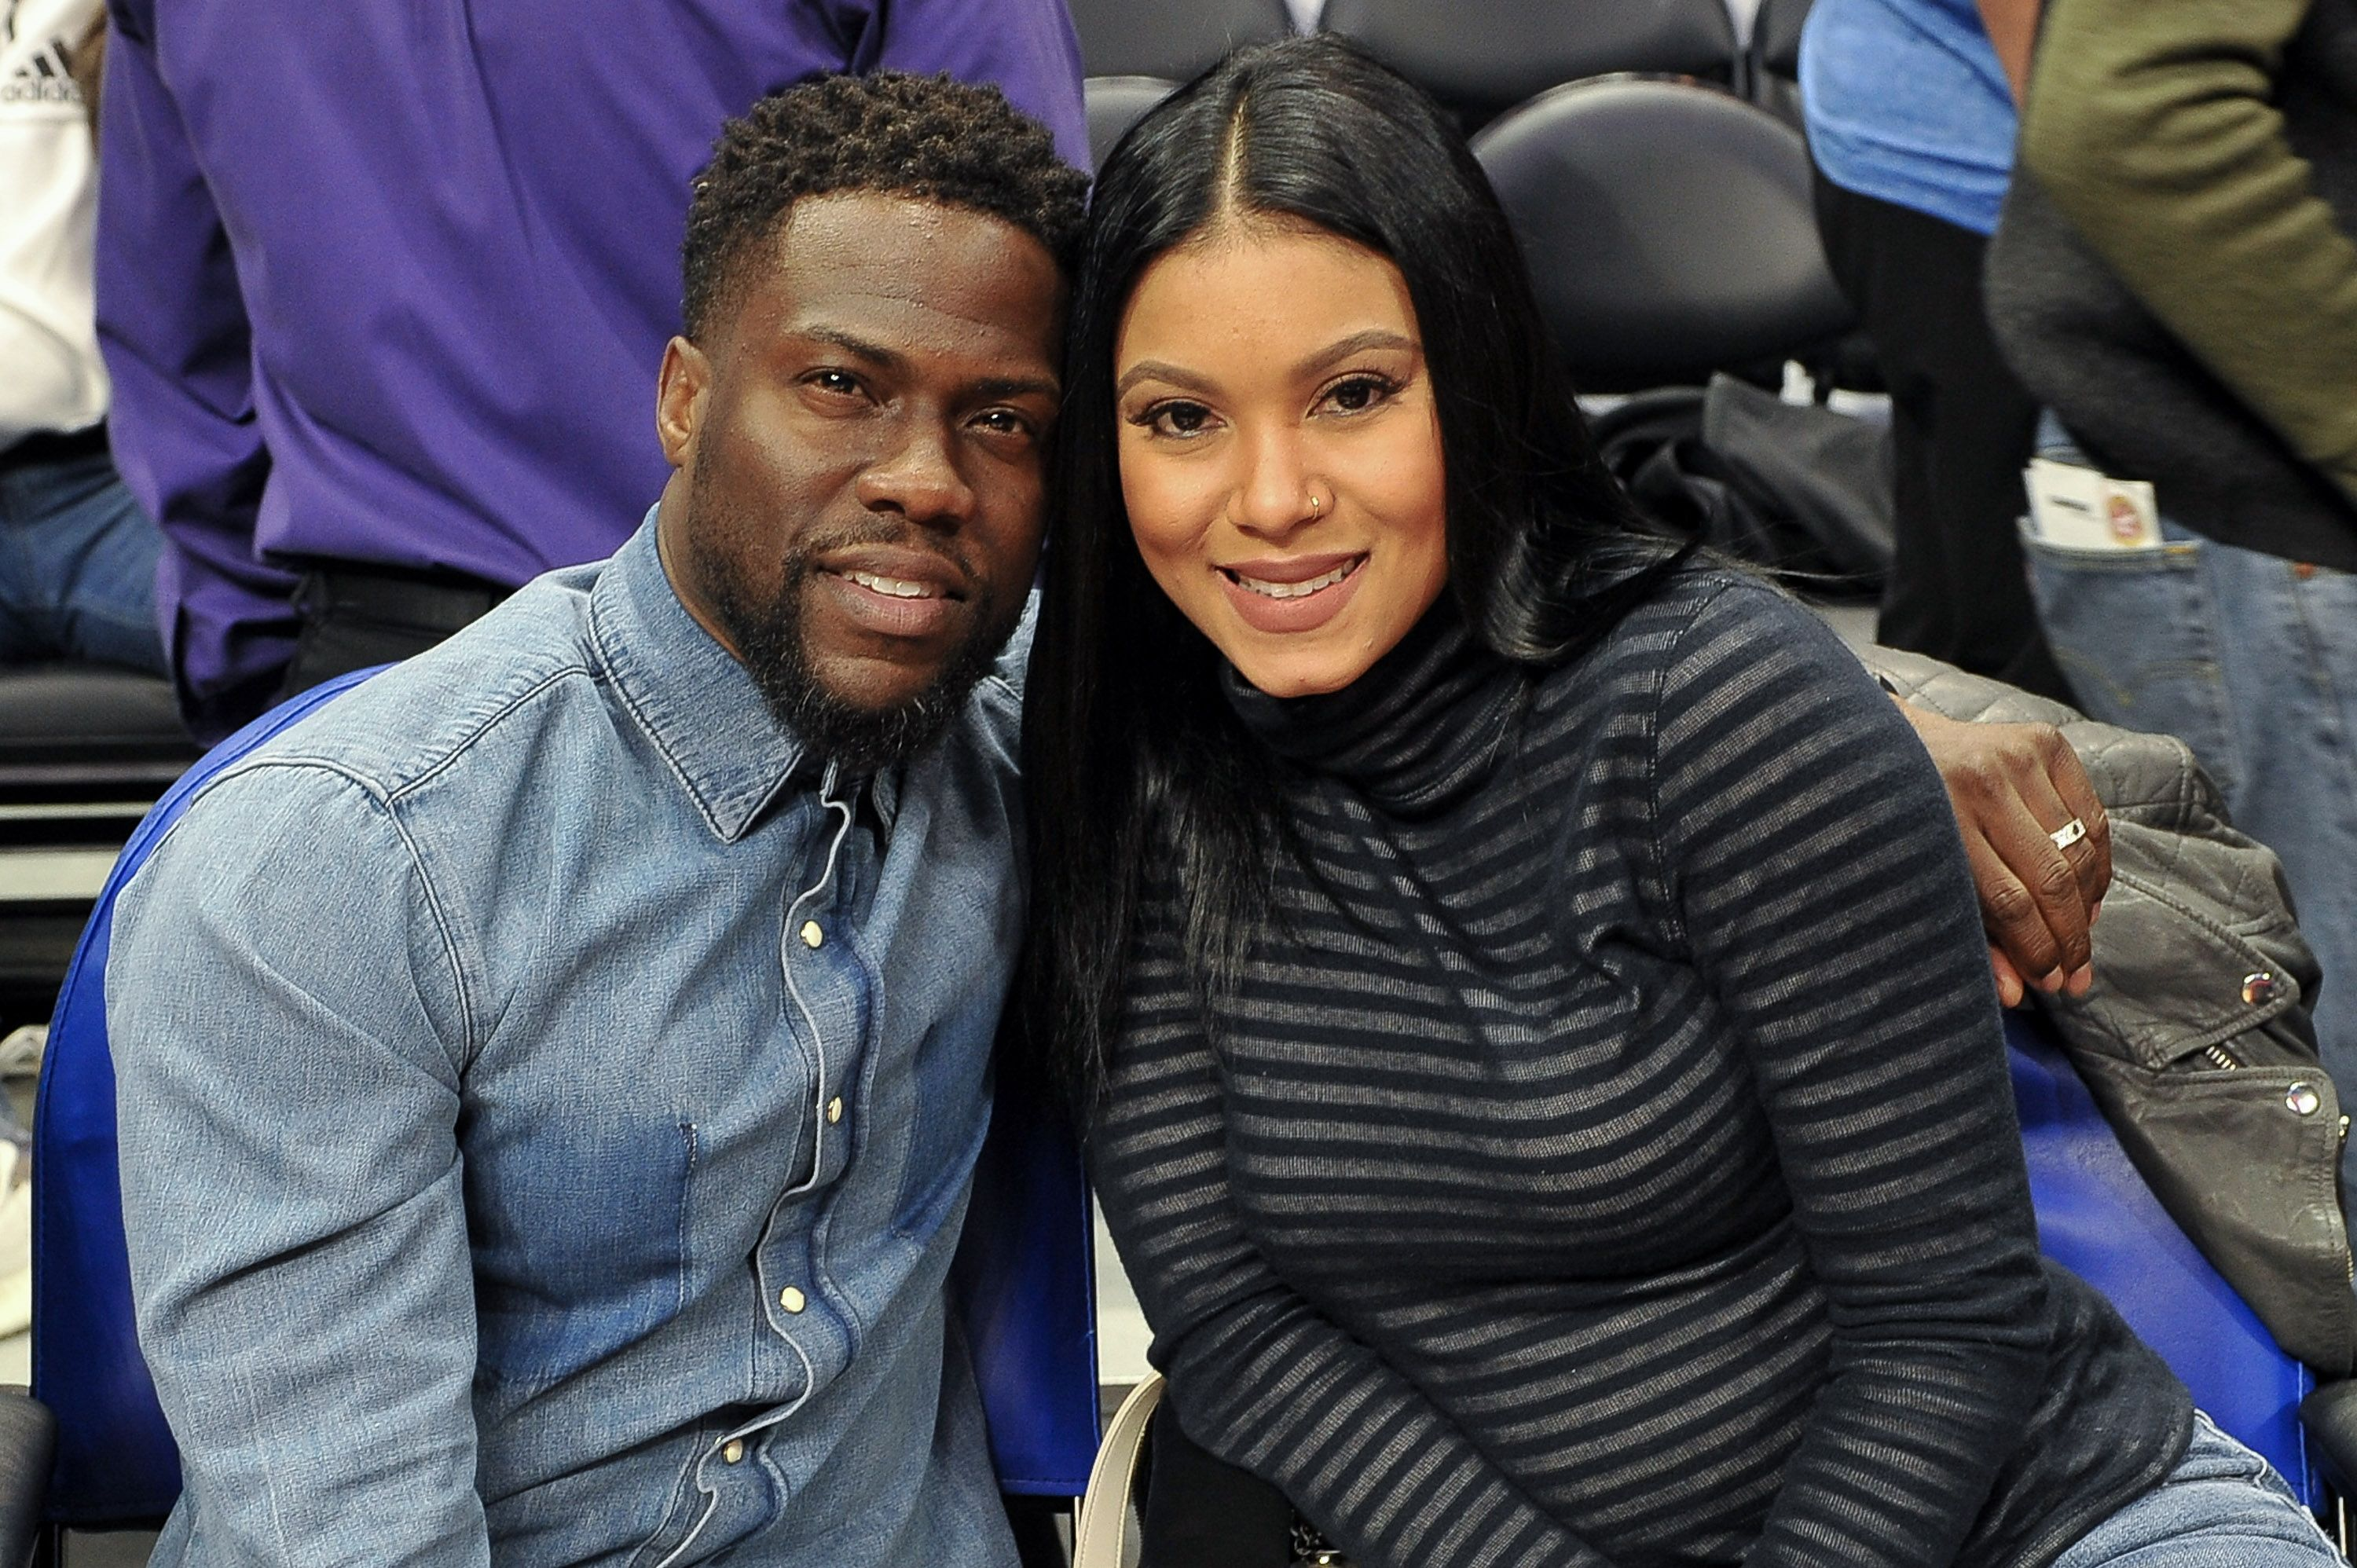 Actor Kevin Hart and Eniko Parrish at a basketball game between the Los Angeles Clippers and the Minnesota Timberwolves at Staples Center in Los Angeles on January 22, 2018. | Photo: Getty Images